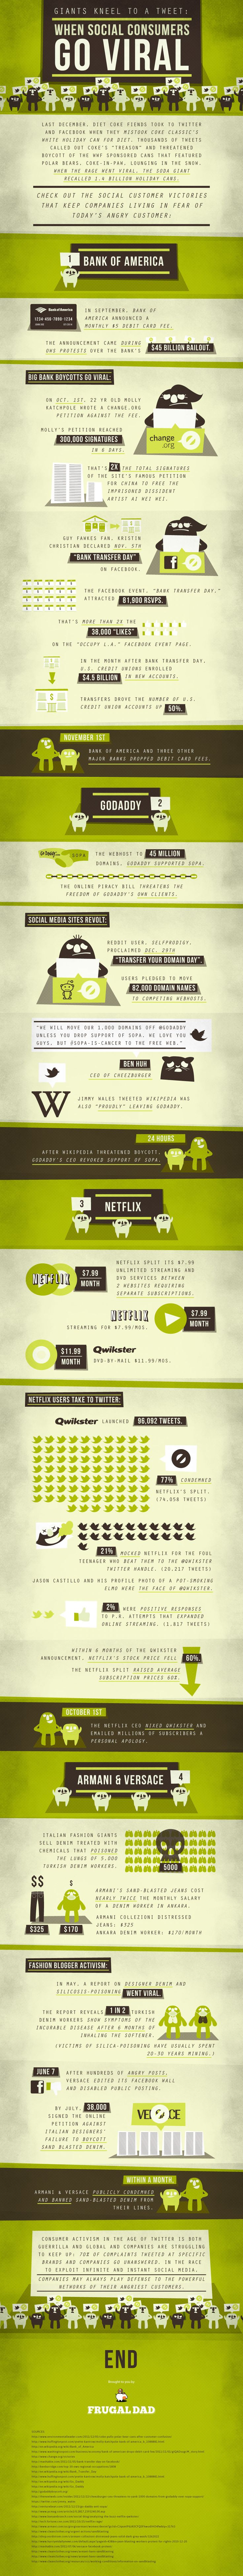 The Power Of The Social Media Consumer - the facts in a visual infograph.